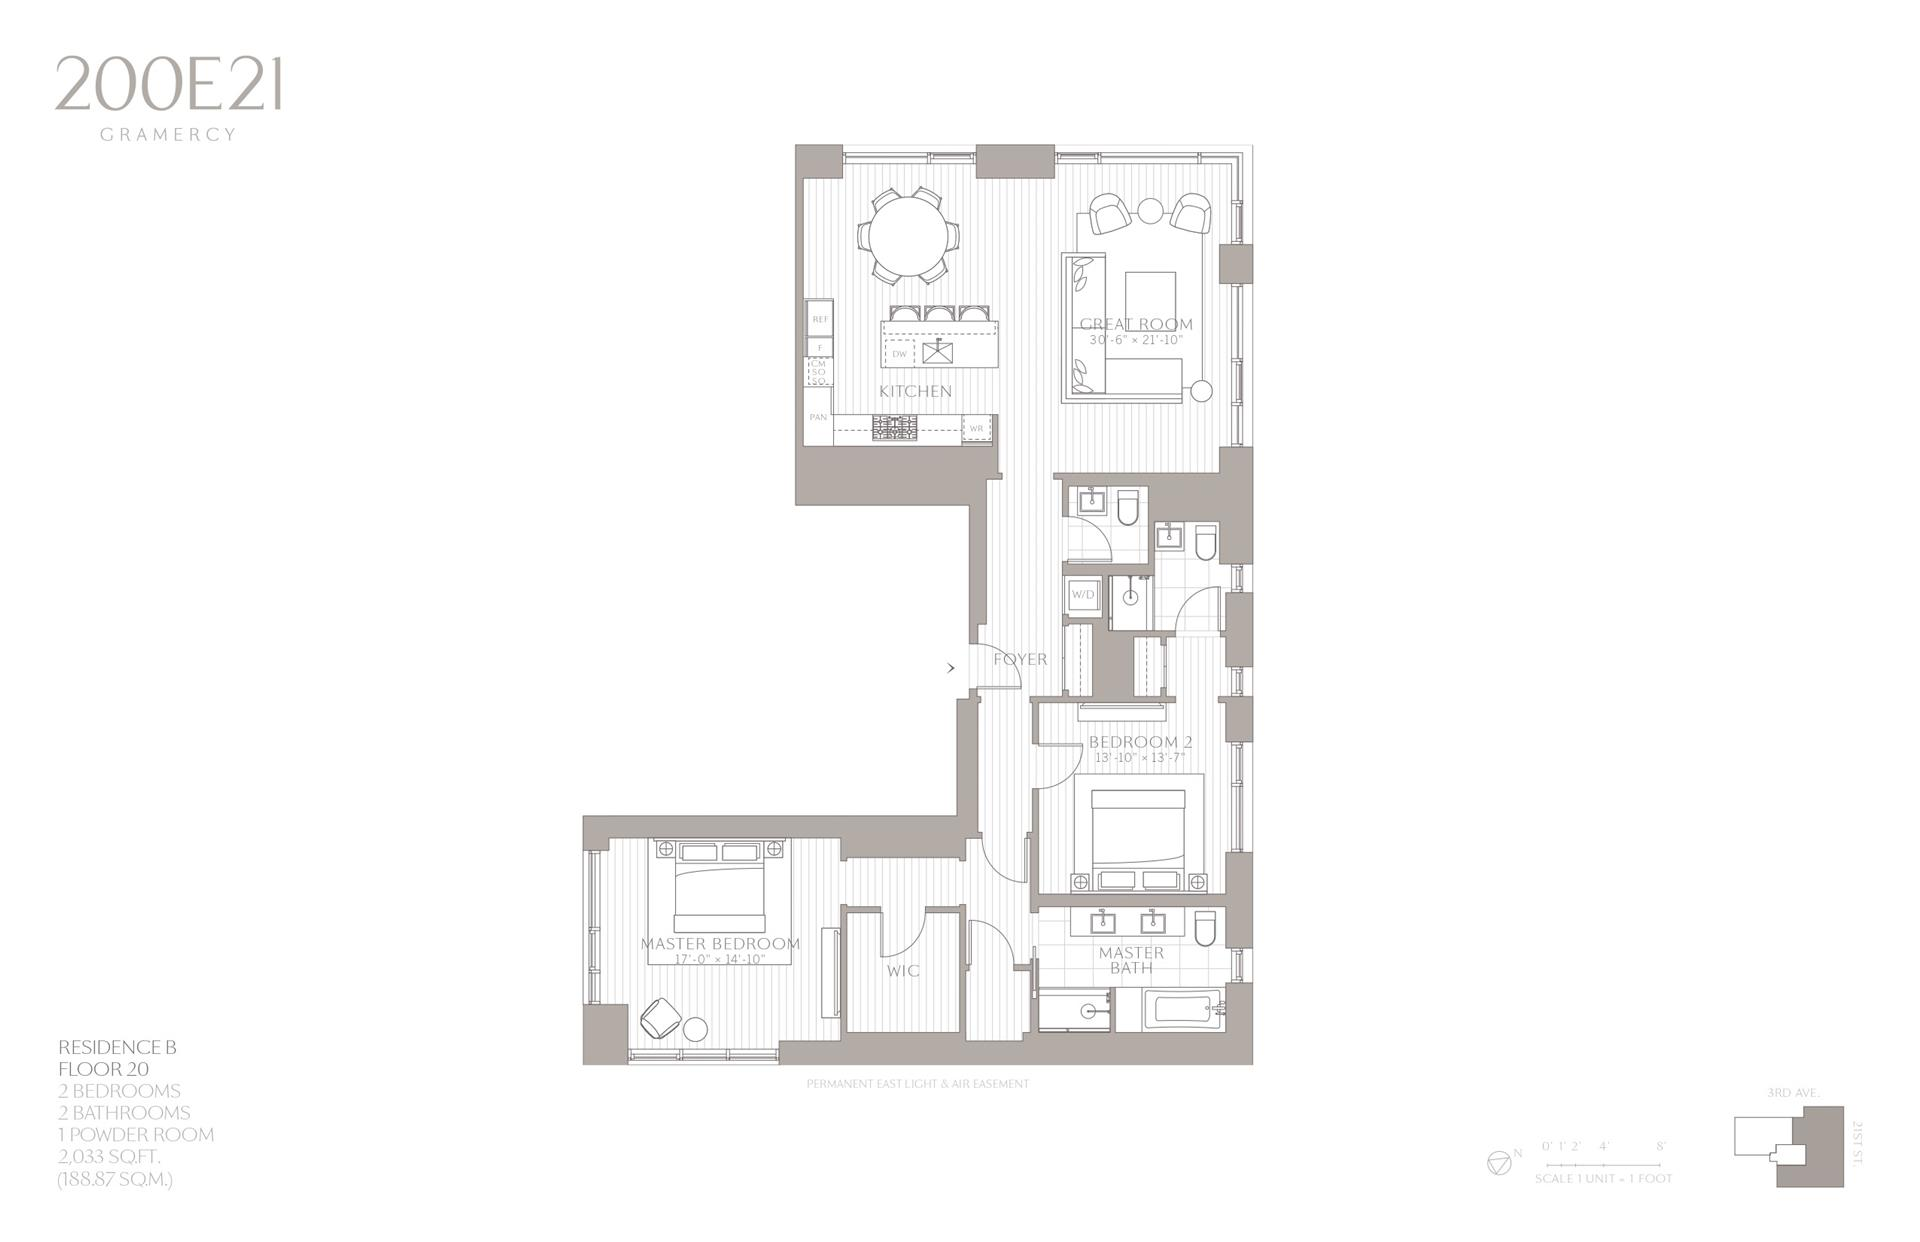 Floor plan of 200 East 21st Street, 20B - Gramercy - Union Square, New York